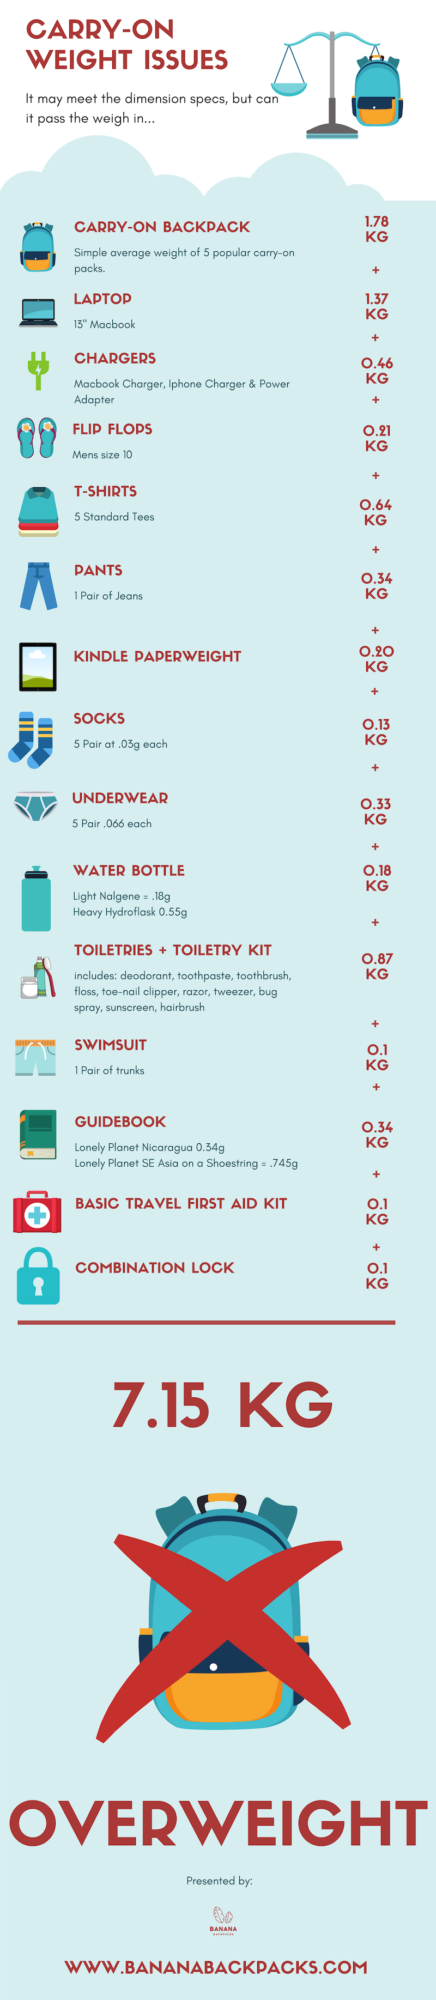 Carry-on luggage weight breakdown